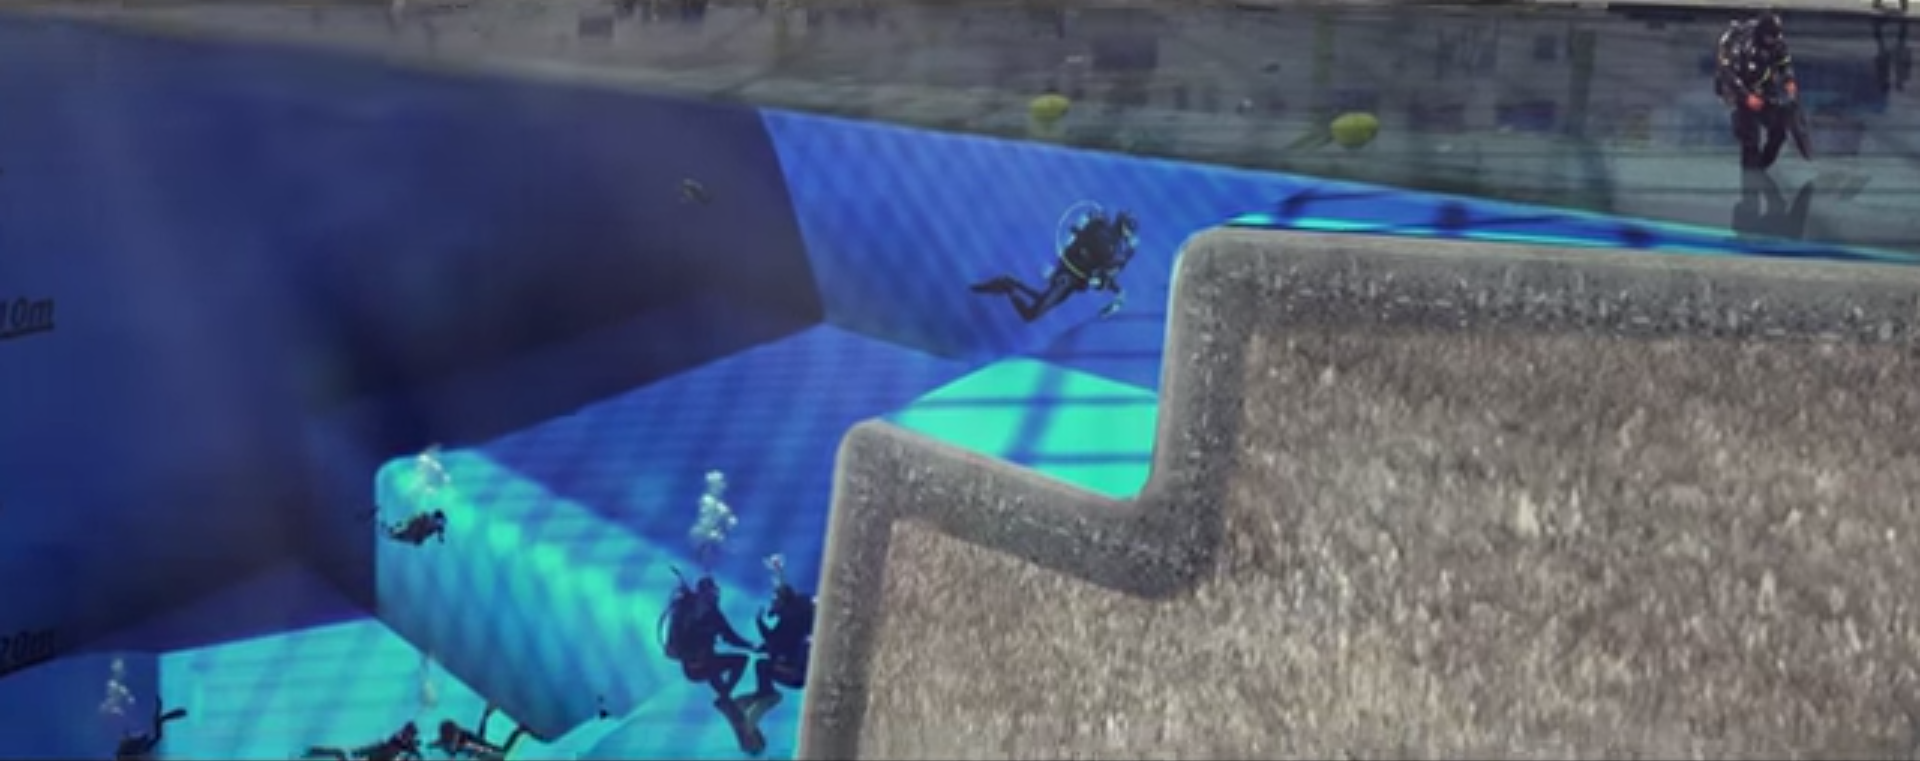 At 164 Feet World 39 S Deepest Pool Could Prove To Be A Vital Asset For Astronauts Industry Tap